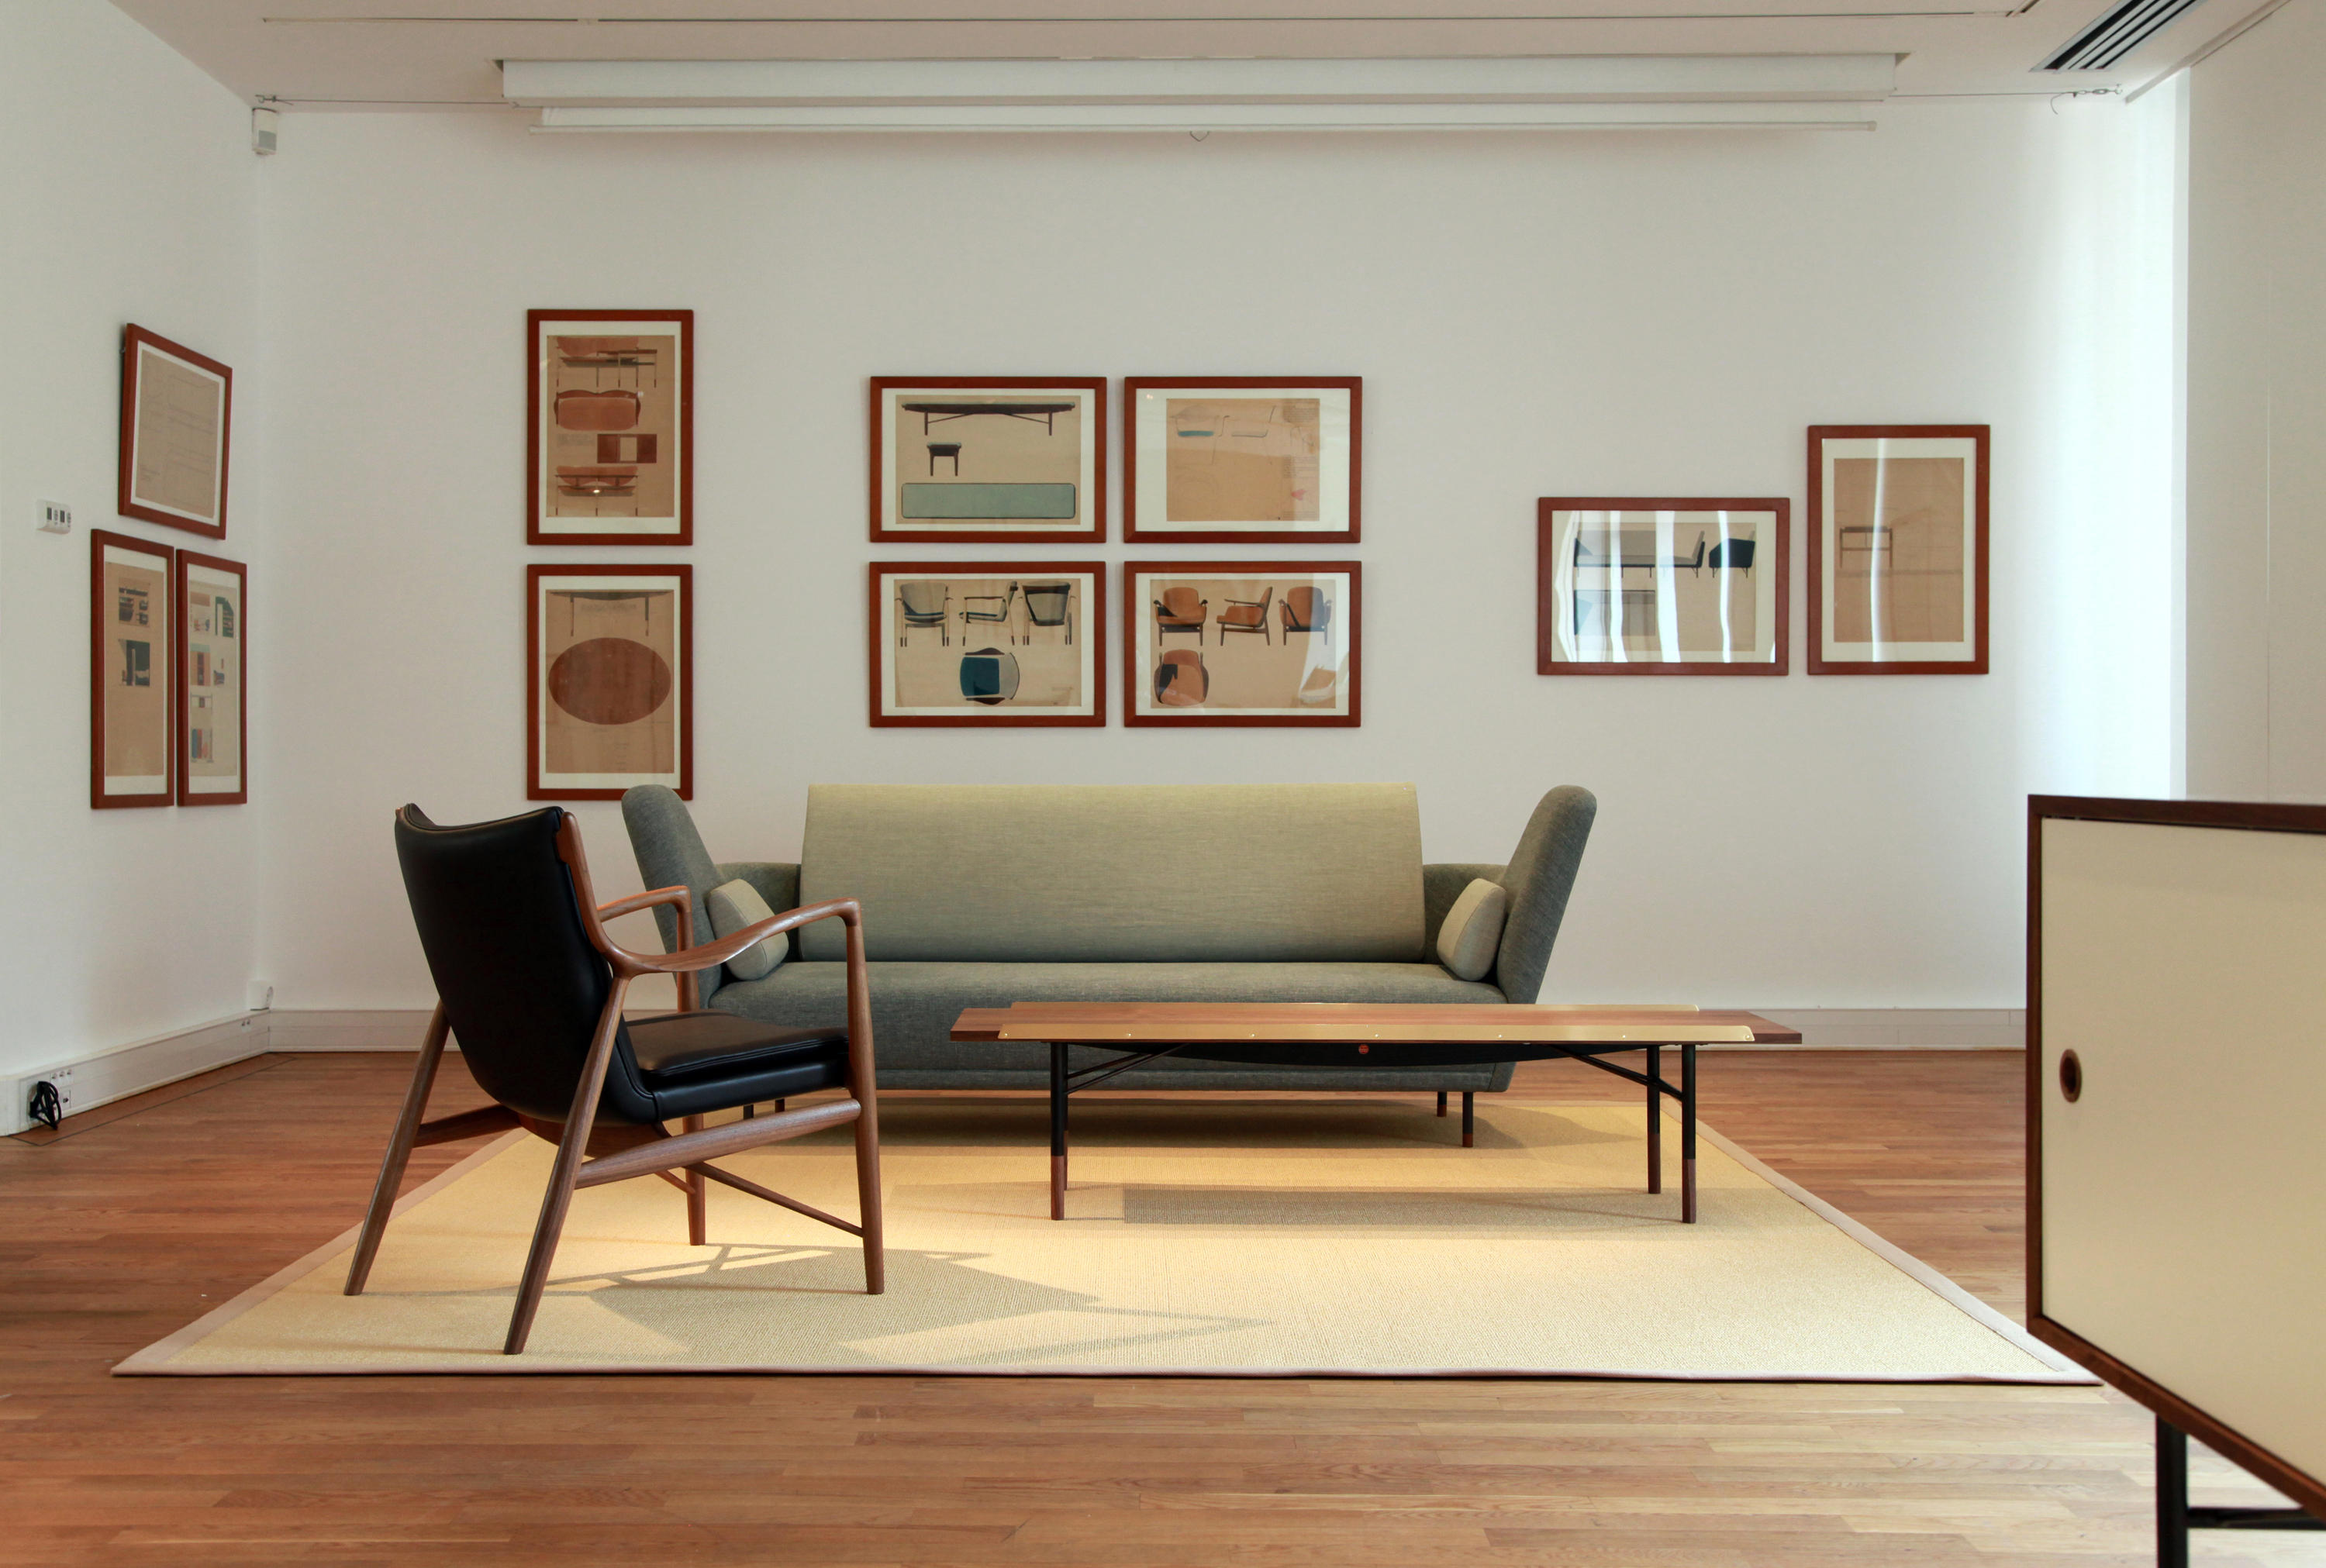 Finn juhl sofa replica home the honoroak for Danish modern reproduction